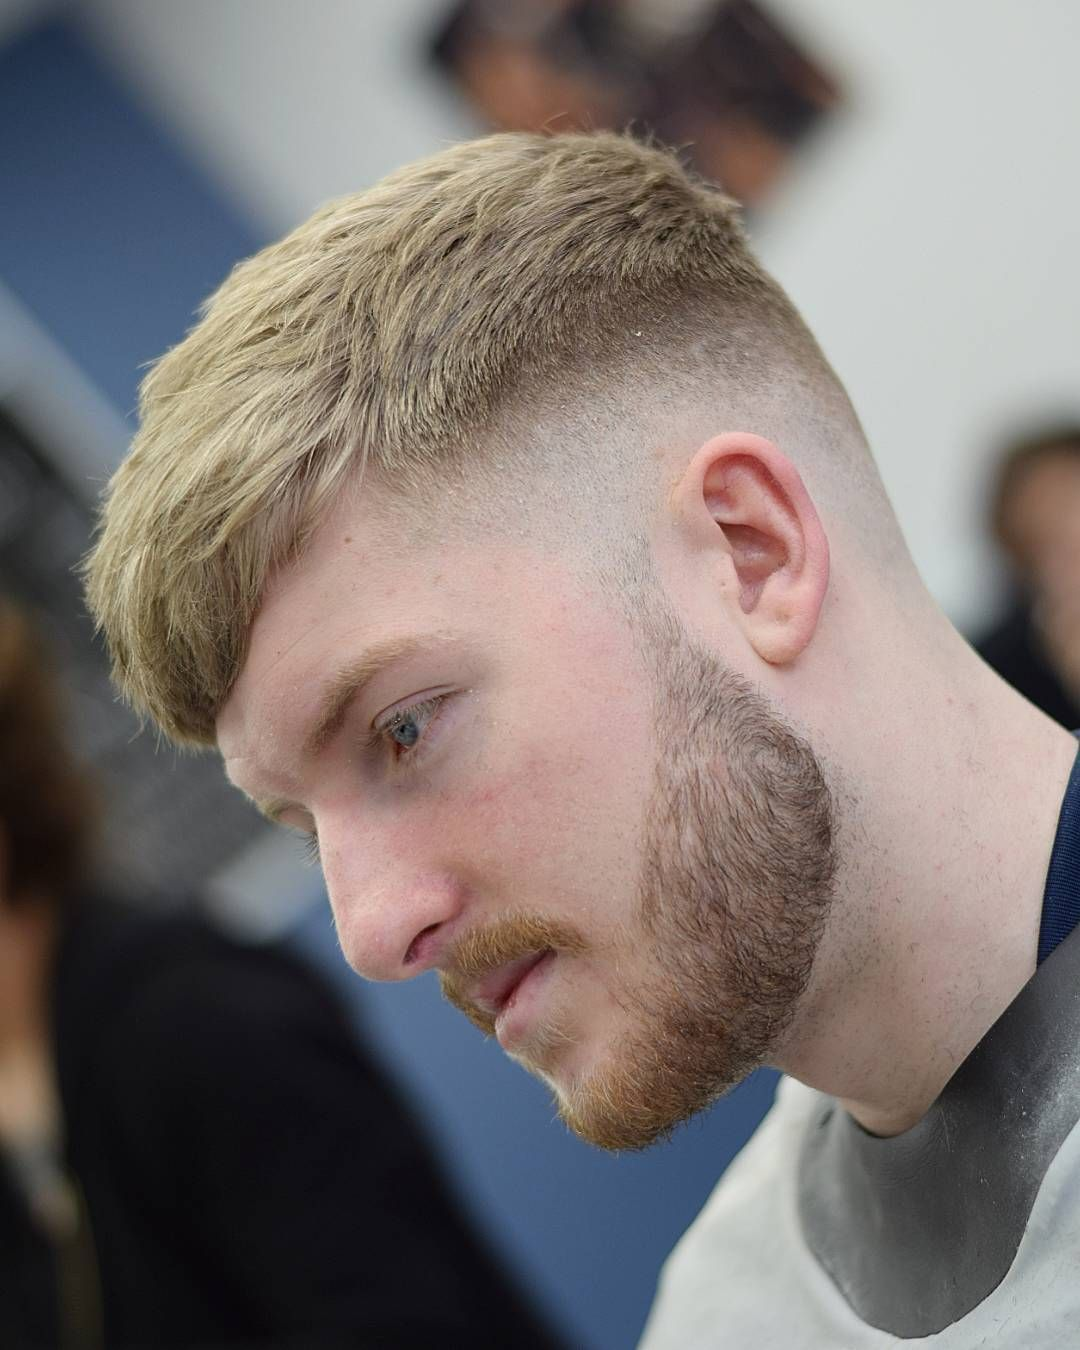 the latest barber haircuts pinterest hair styles